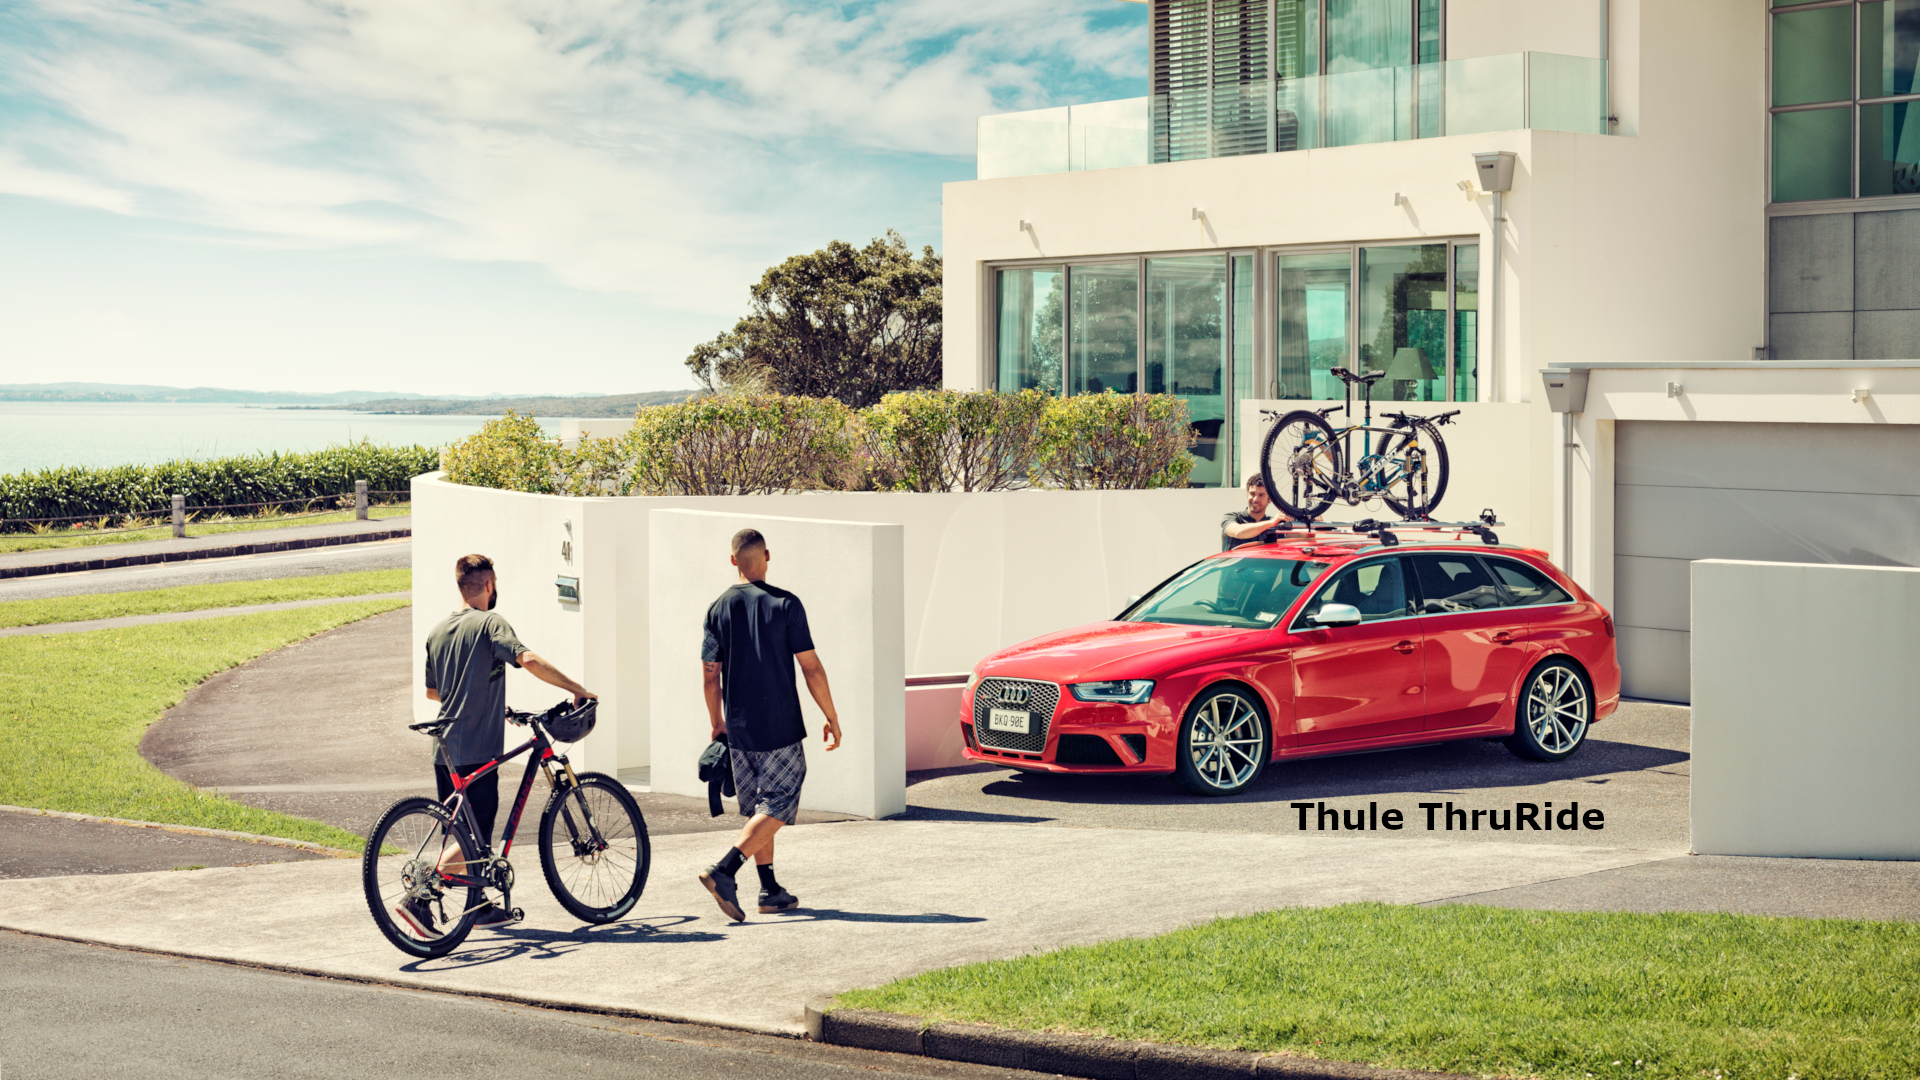 Thule bike rack, thule bike racks